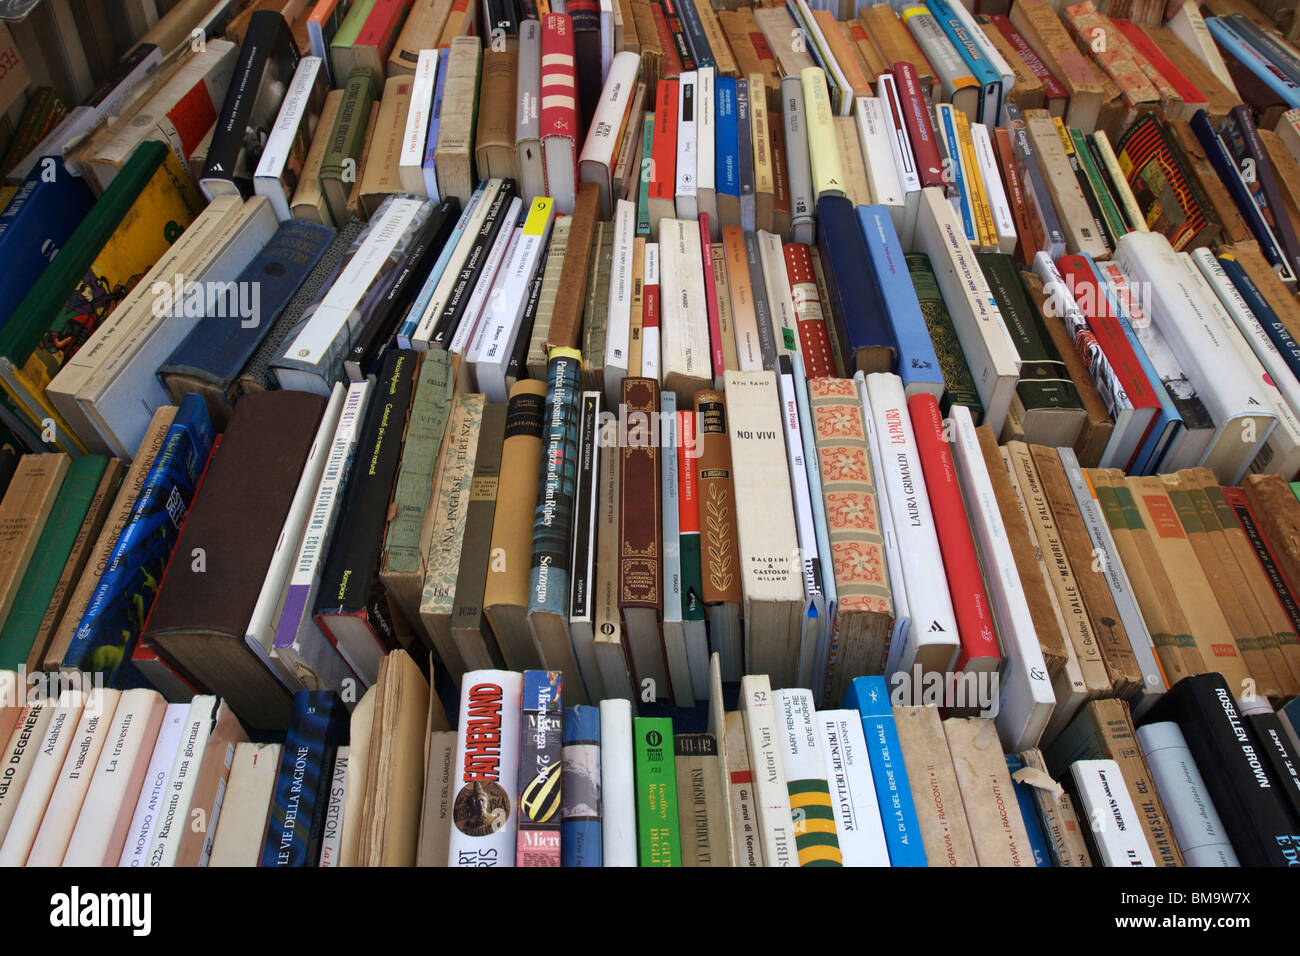 Group of secondhand books in a street bookshop - Stock Image